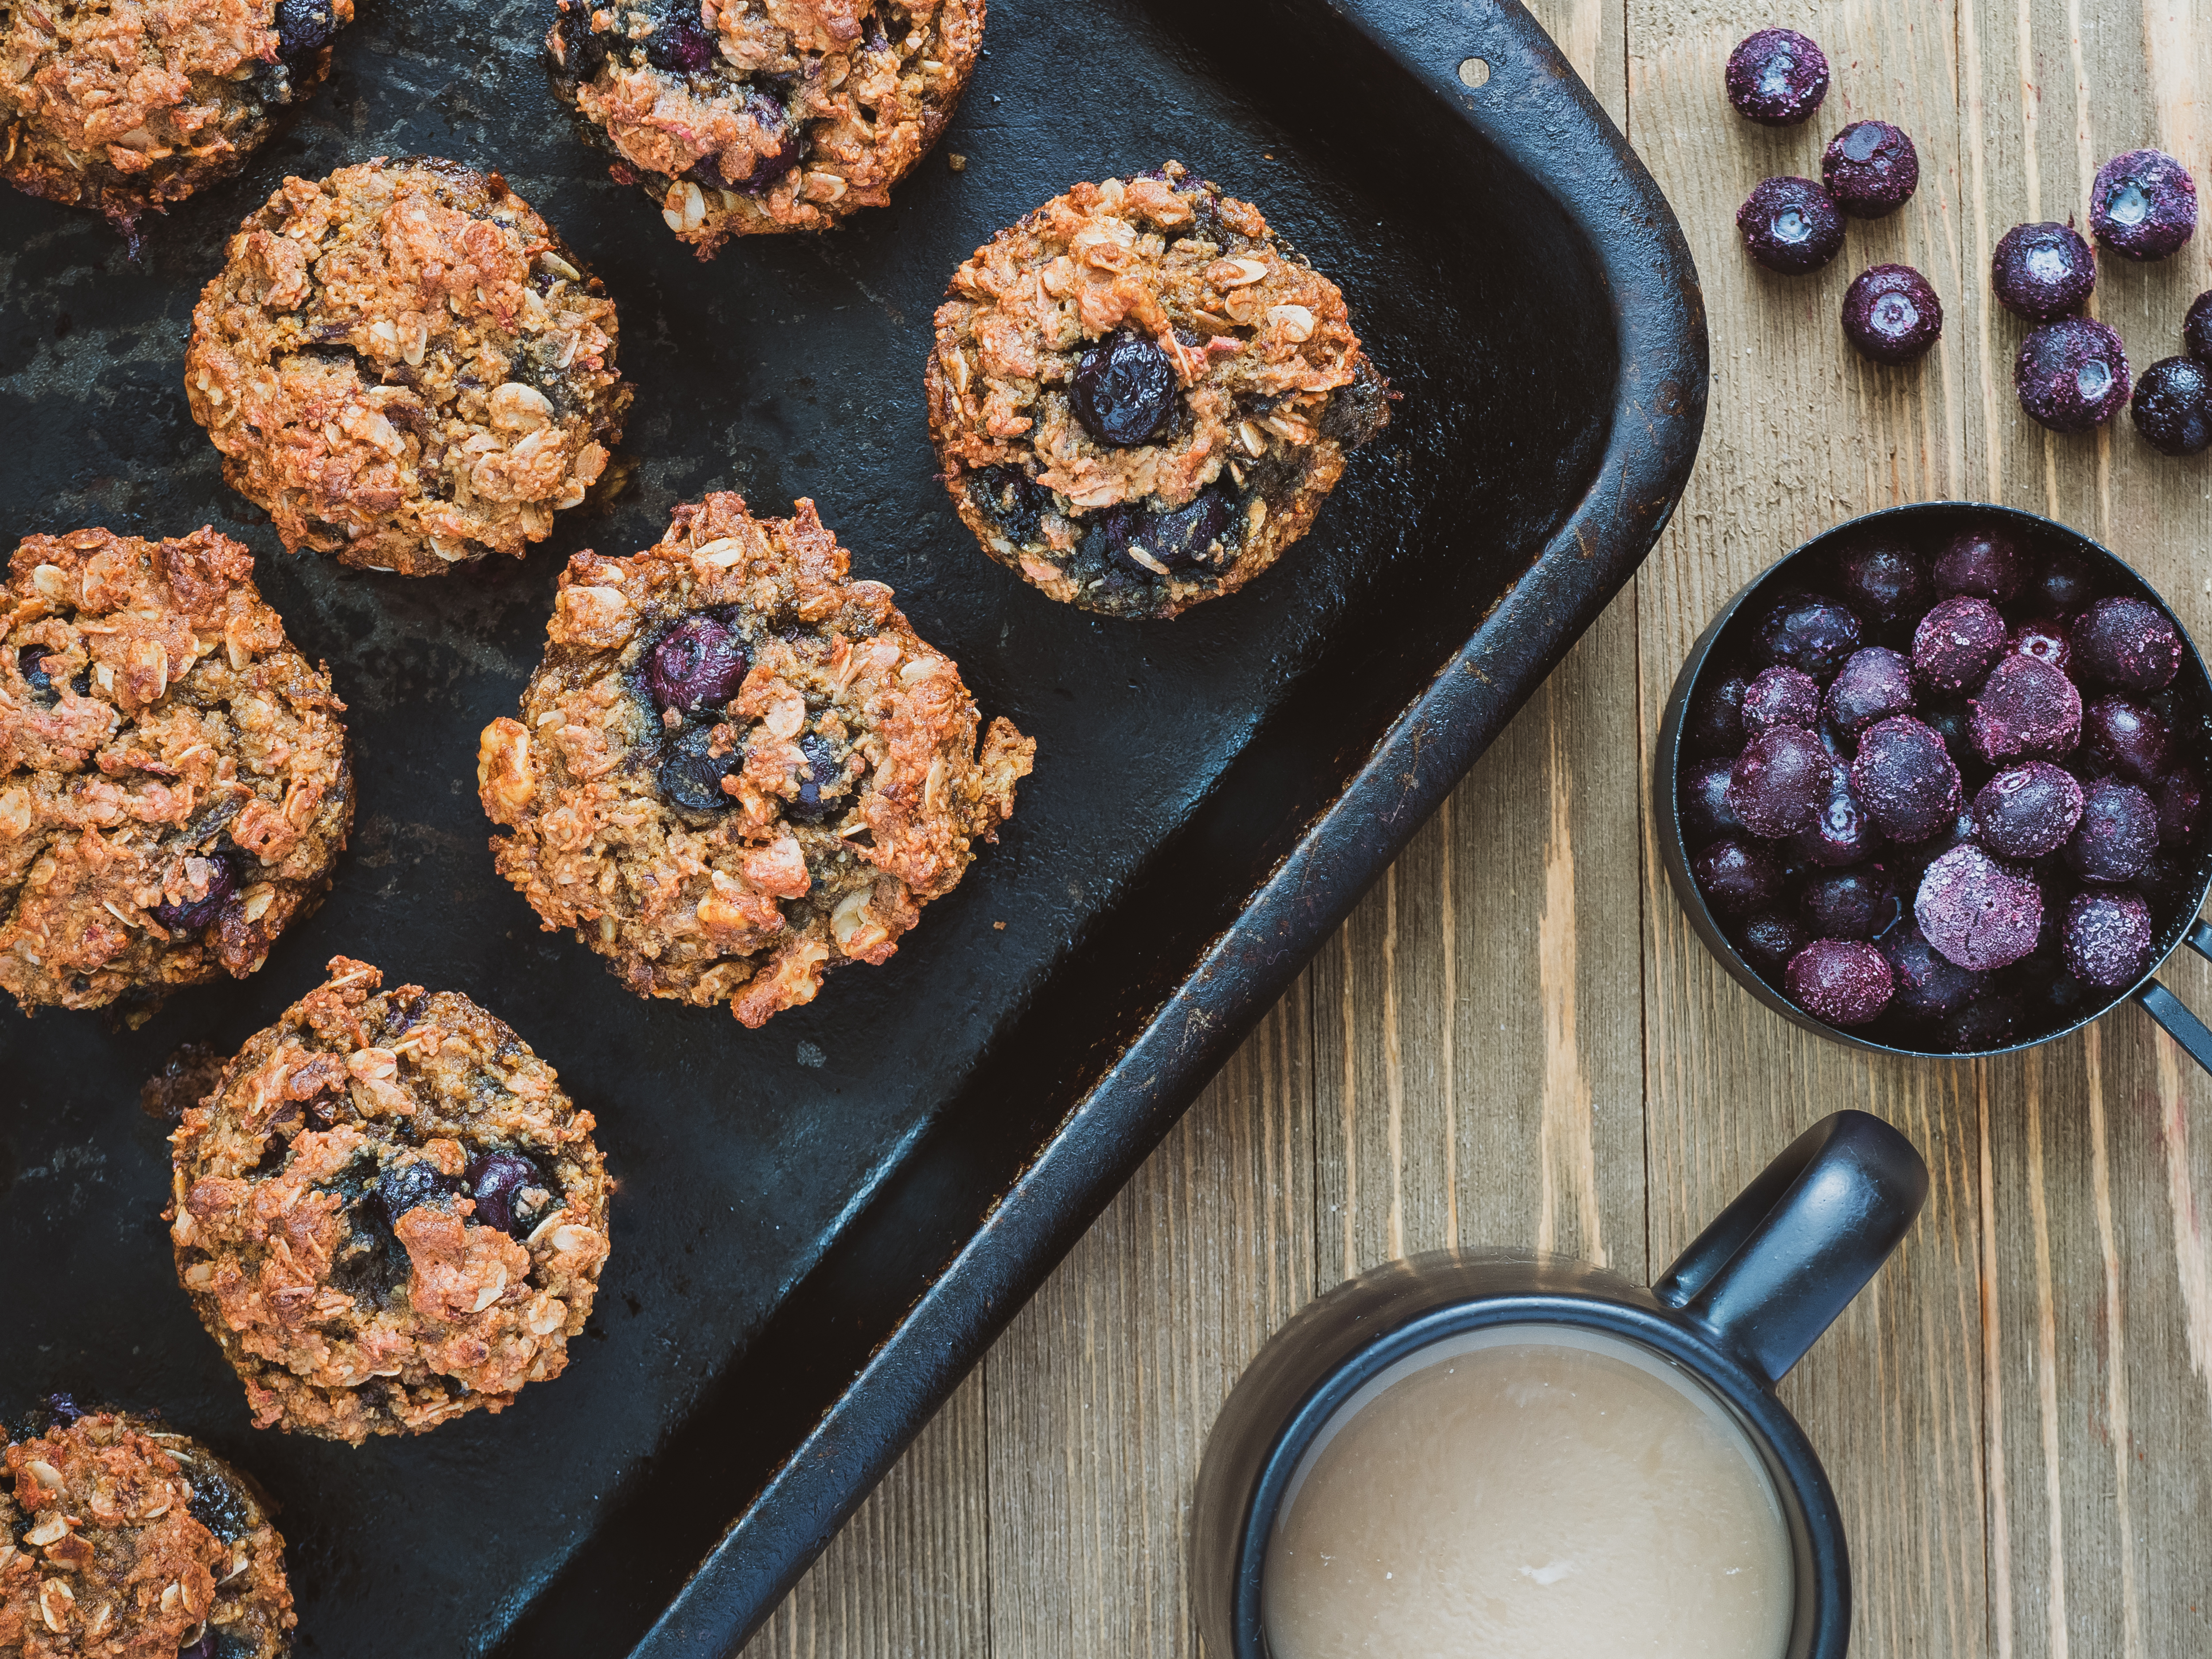 Muffins made with grated beet roots and frozen blueberries.